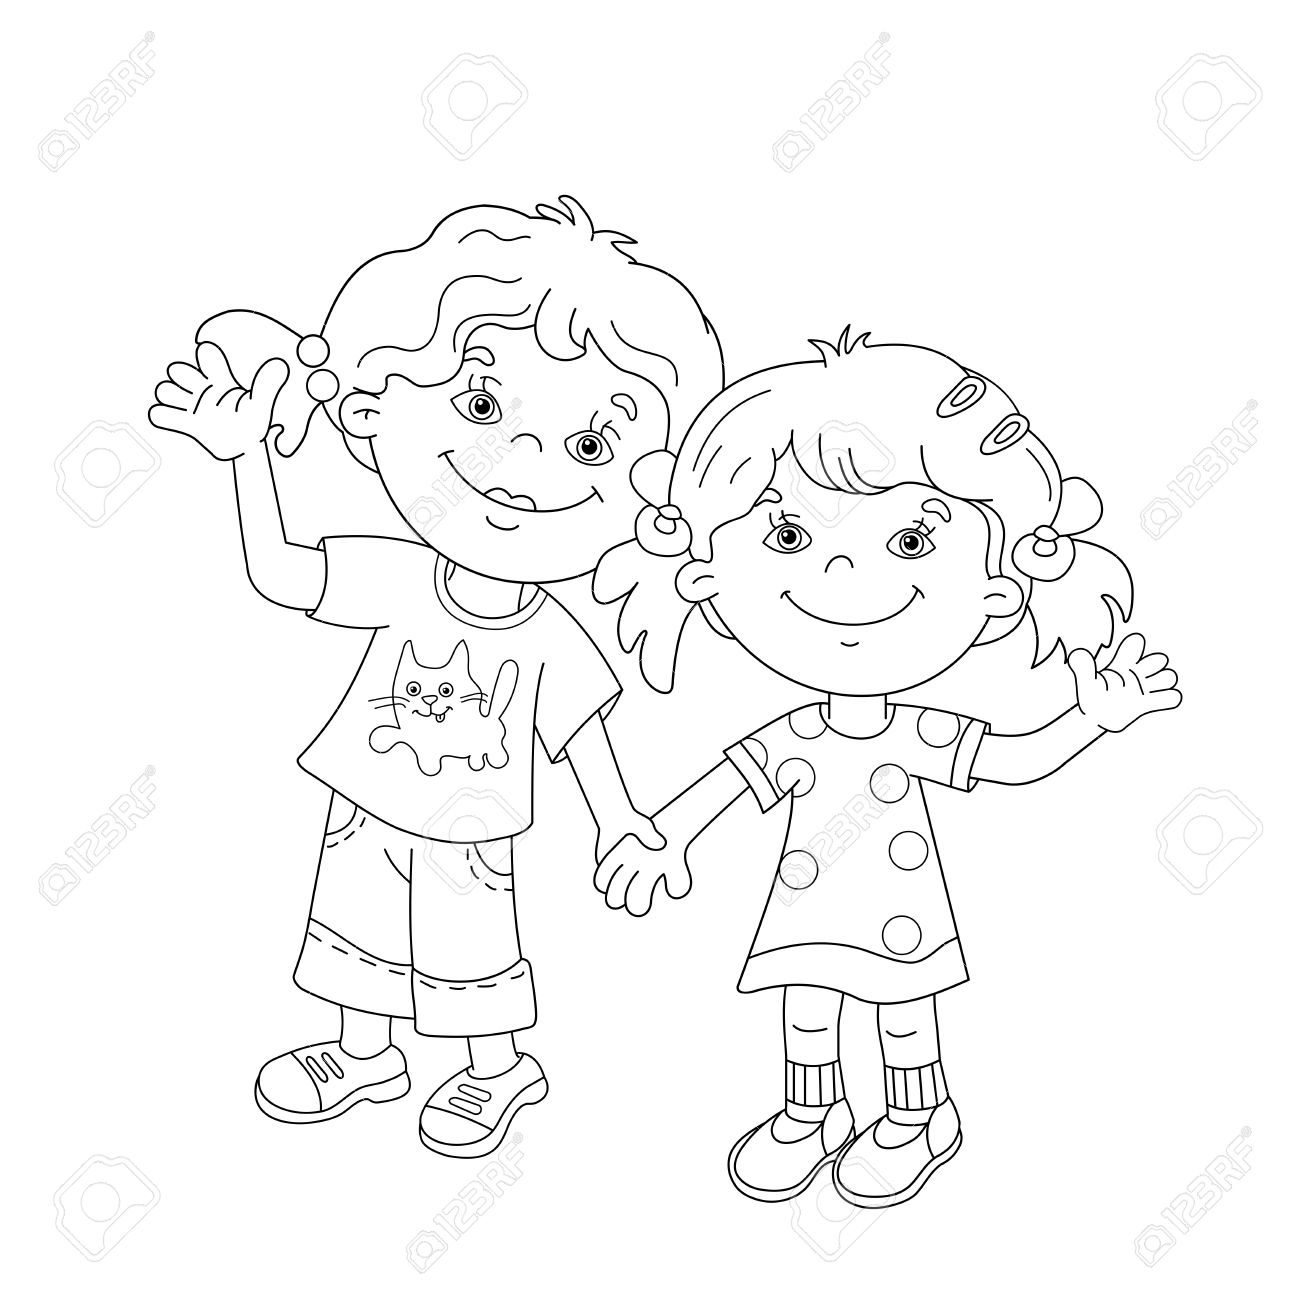 coloring page outline of cartoon girls holding hands coloring book for kids stock vector